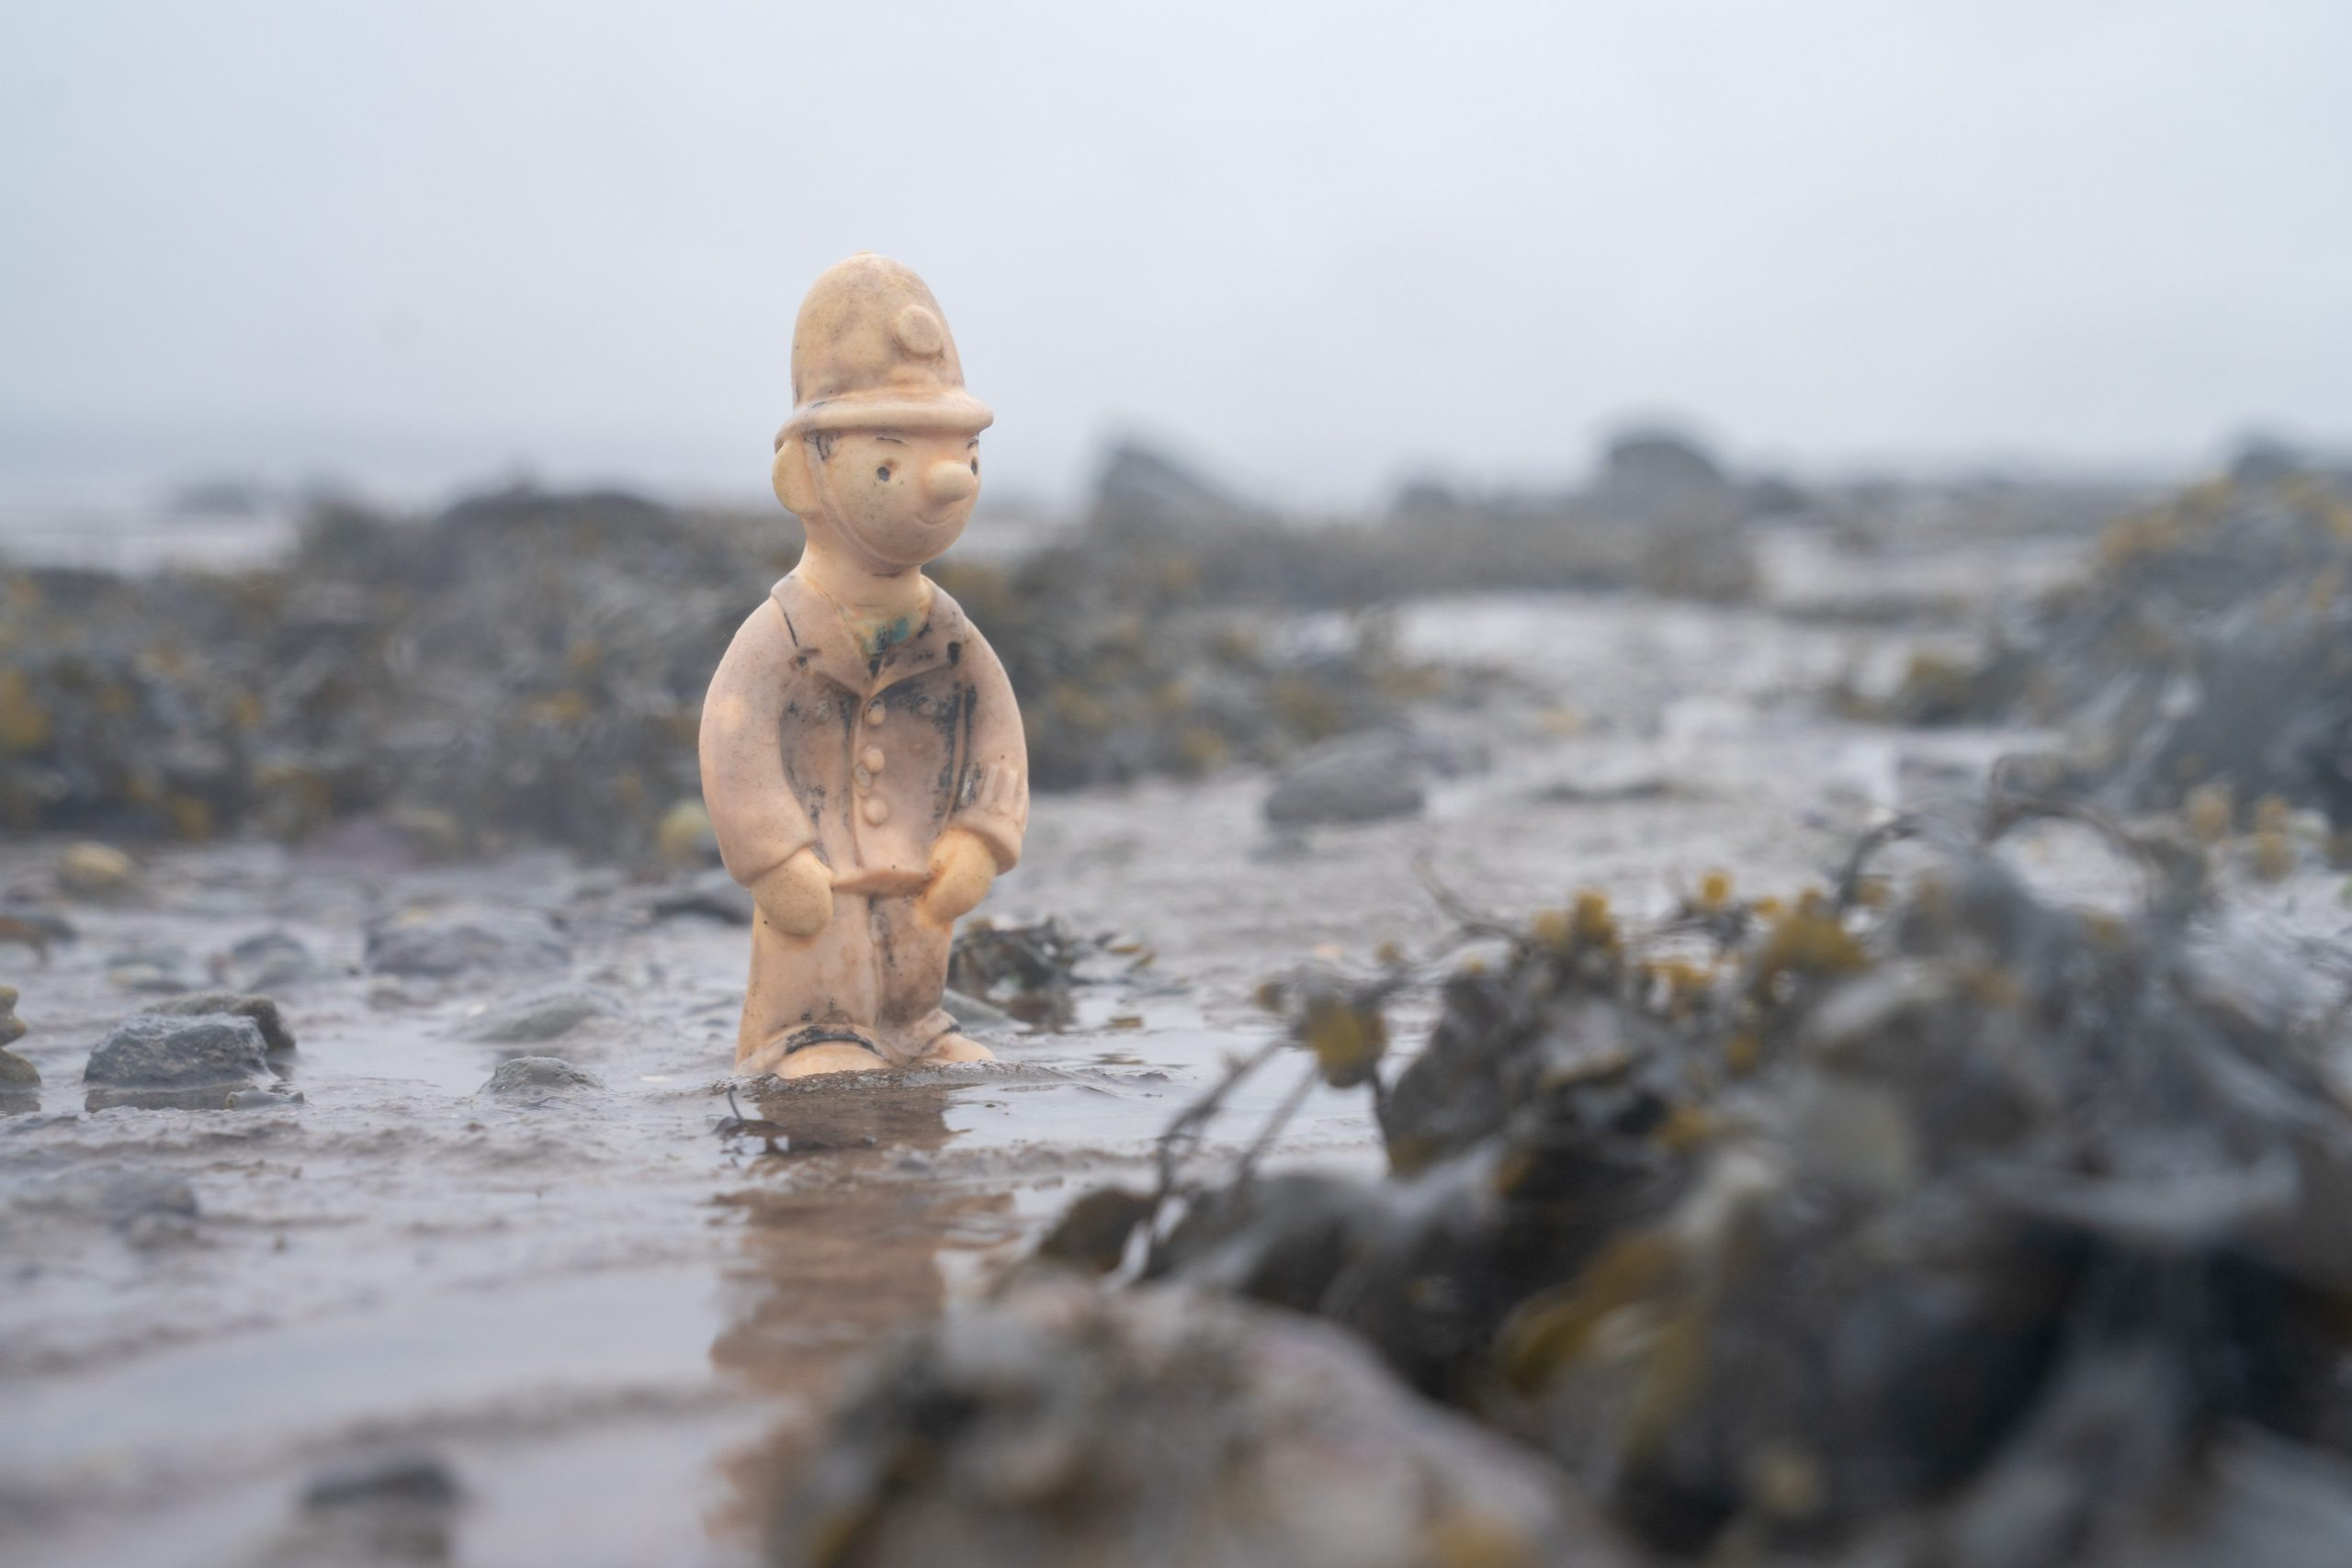 The plastic figure of Camberwick Green's PC McGarry on the beach at Torryburn after being in the sea for decades